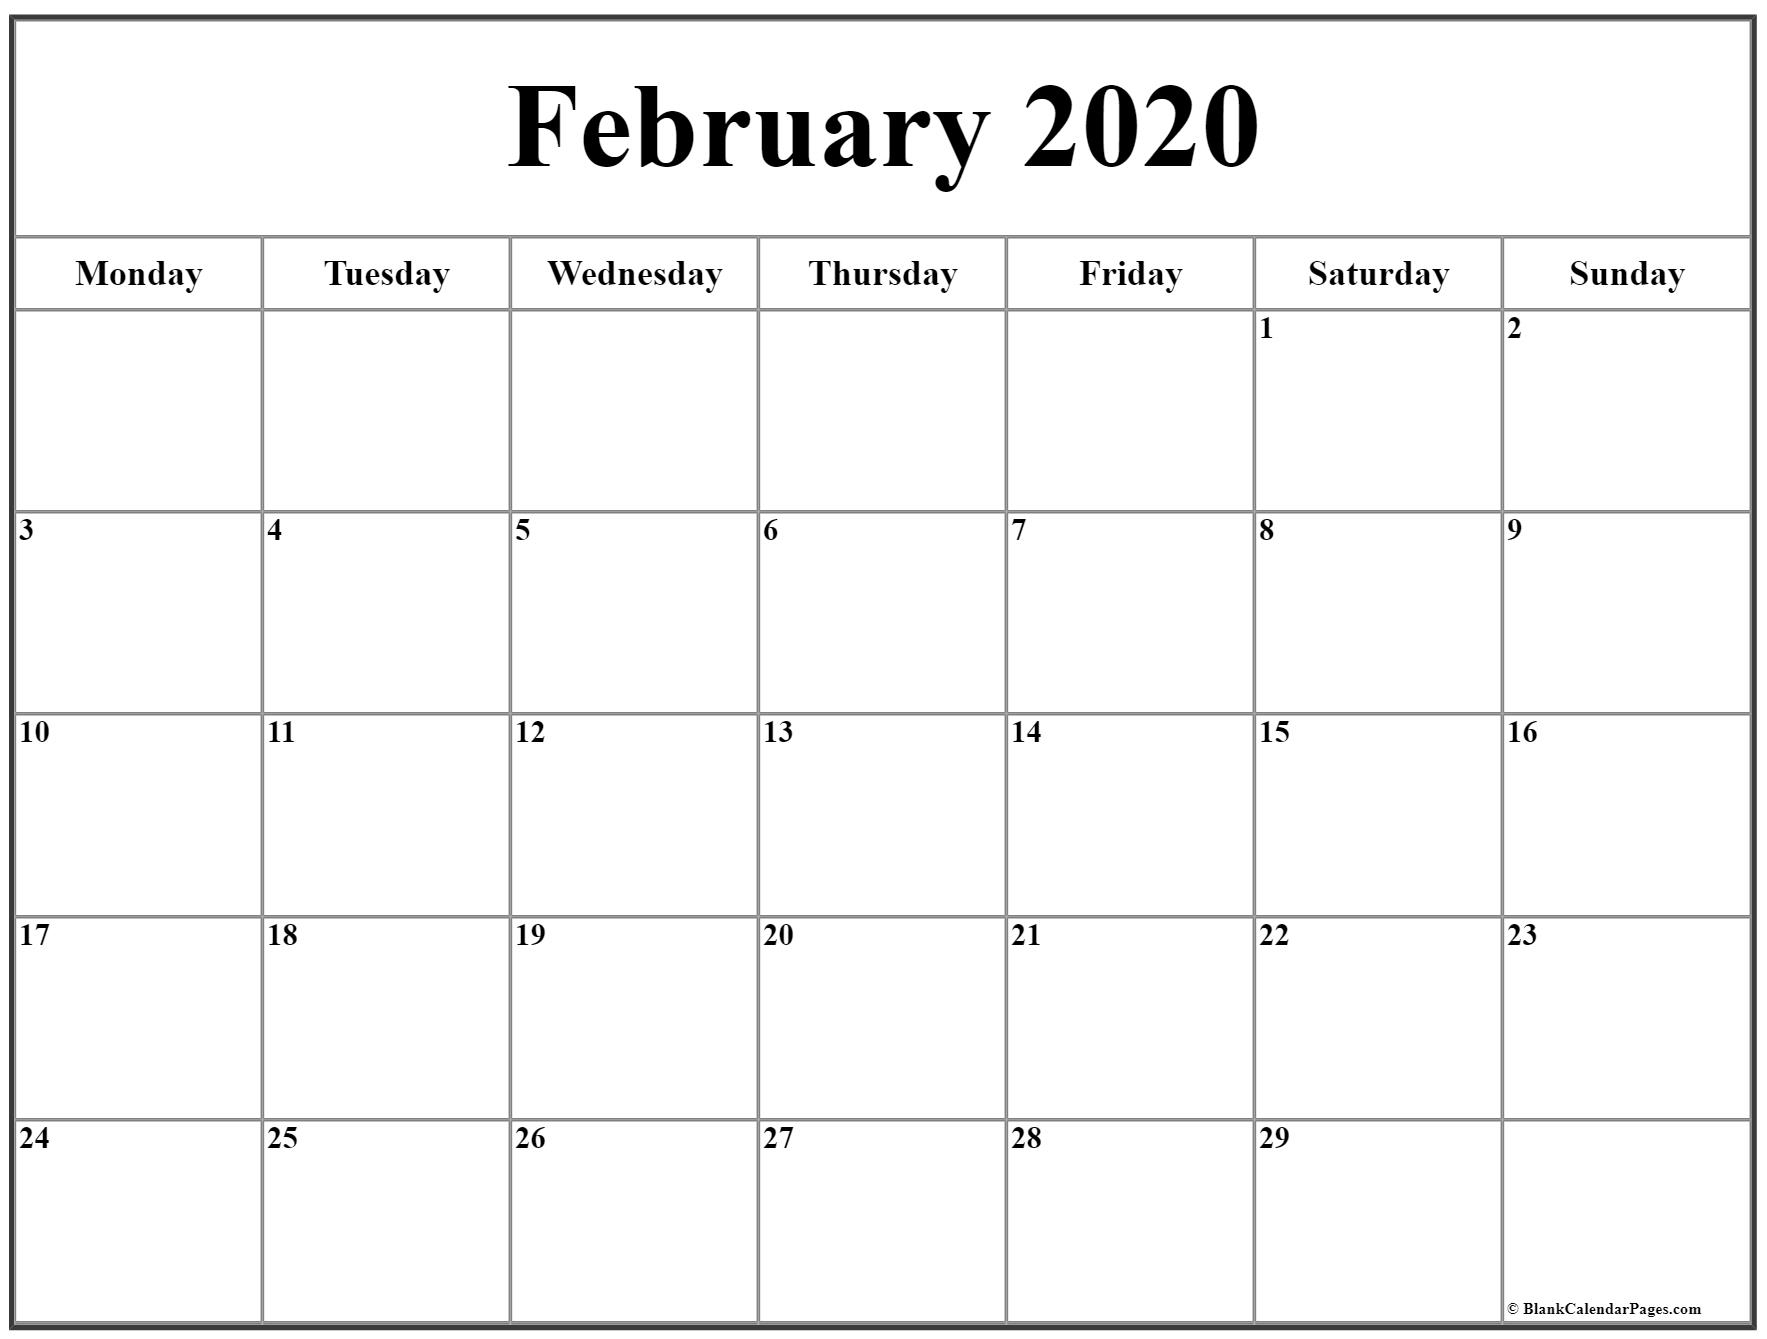 February 2020 Monday Calendar | Monday To Sunday intended for Monday Through Friday Calendar Template